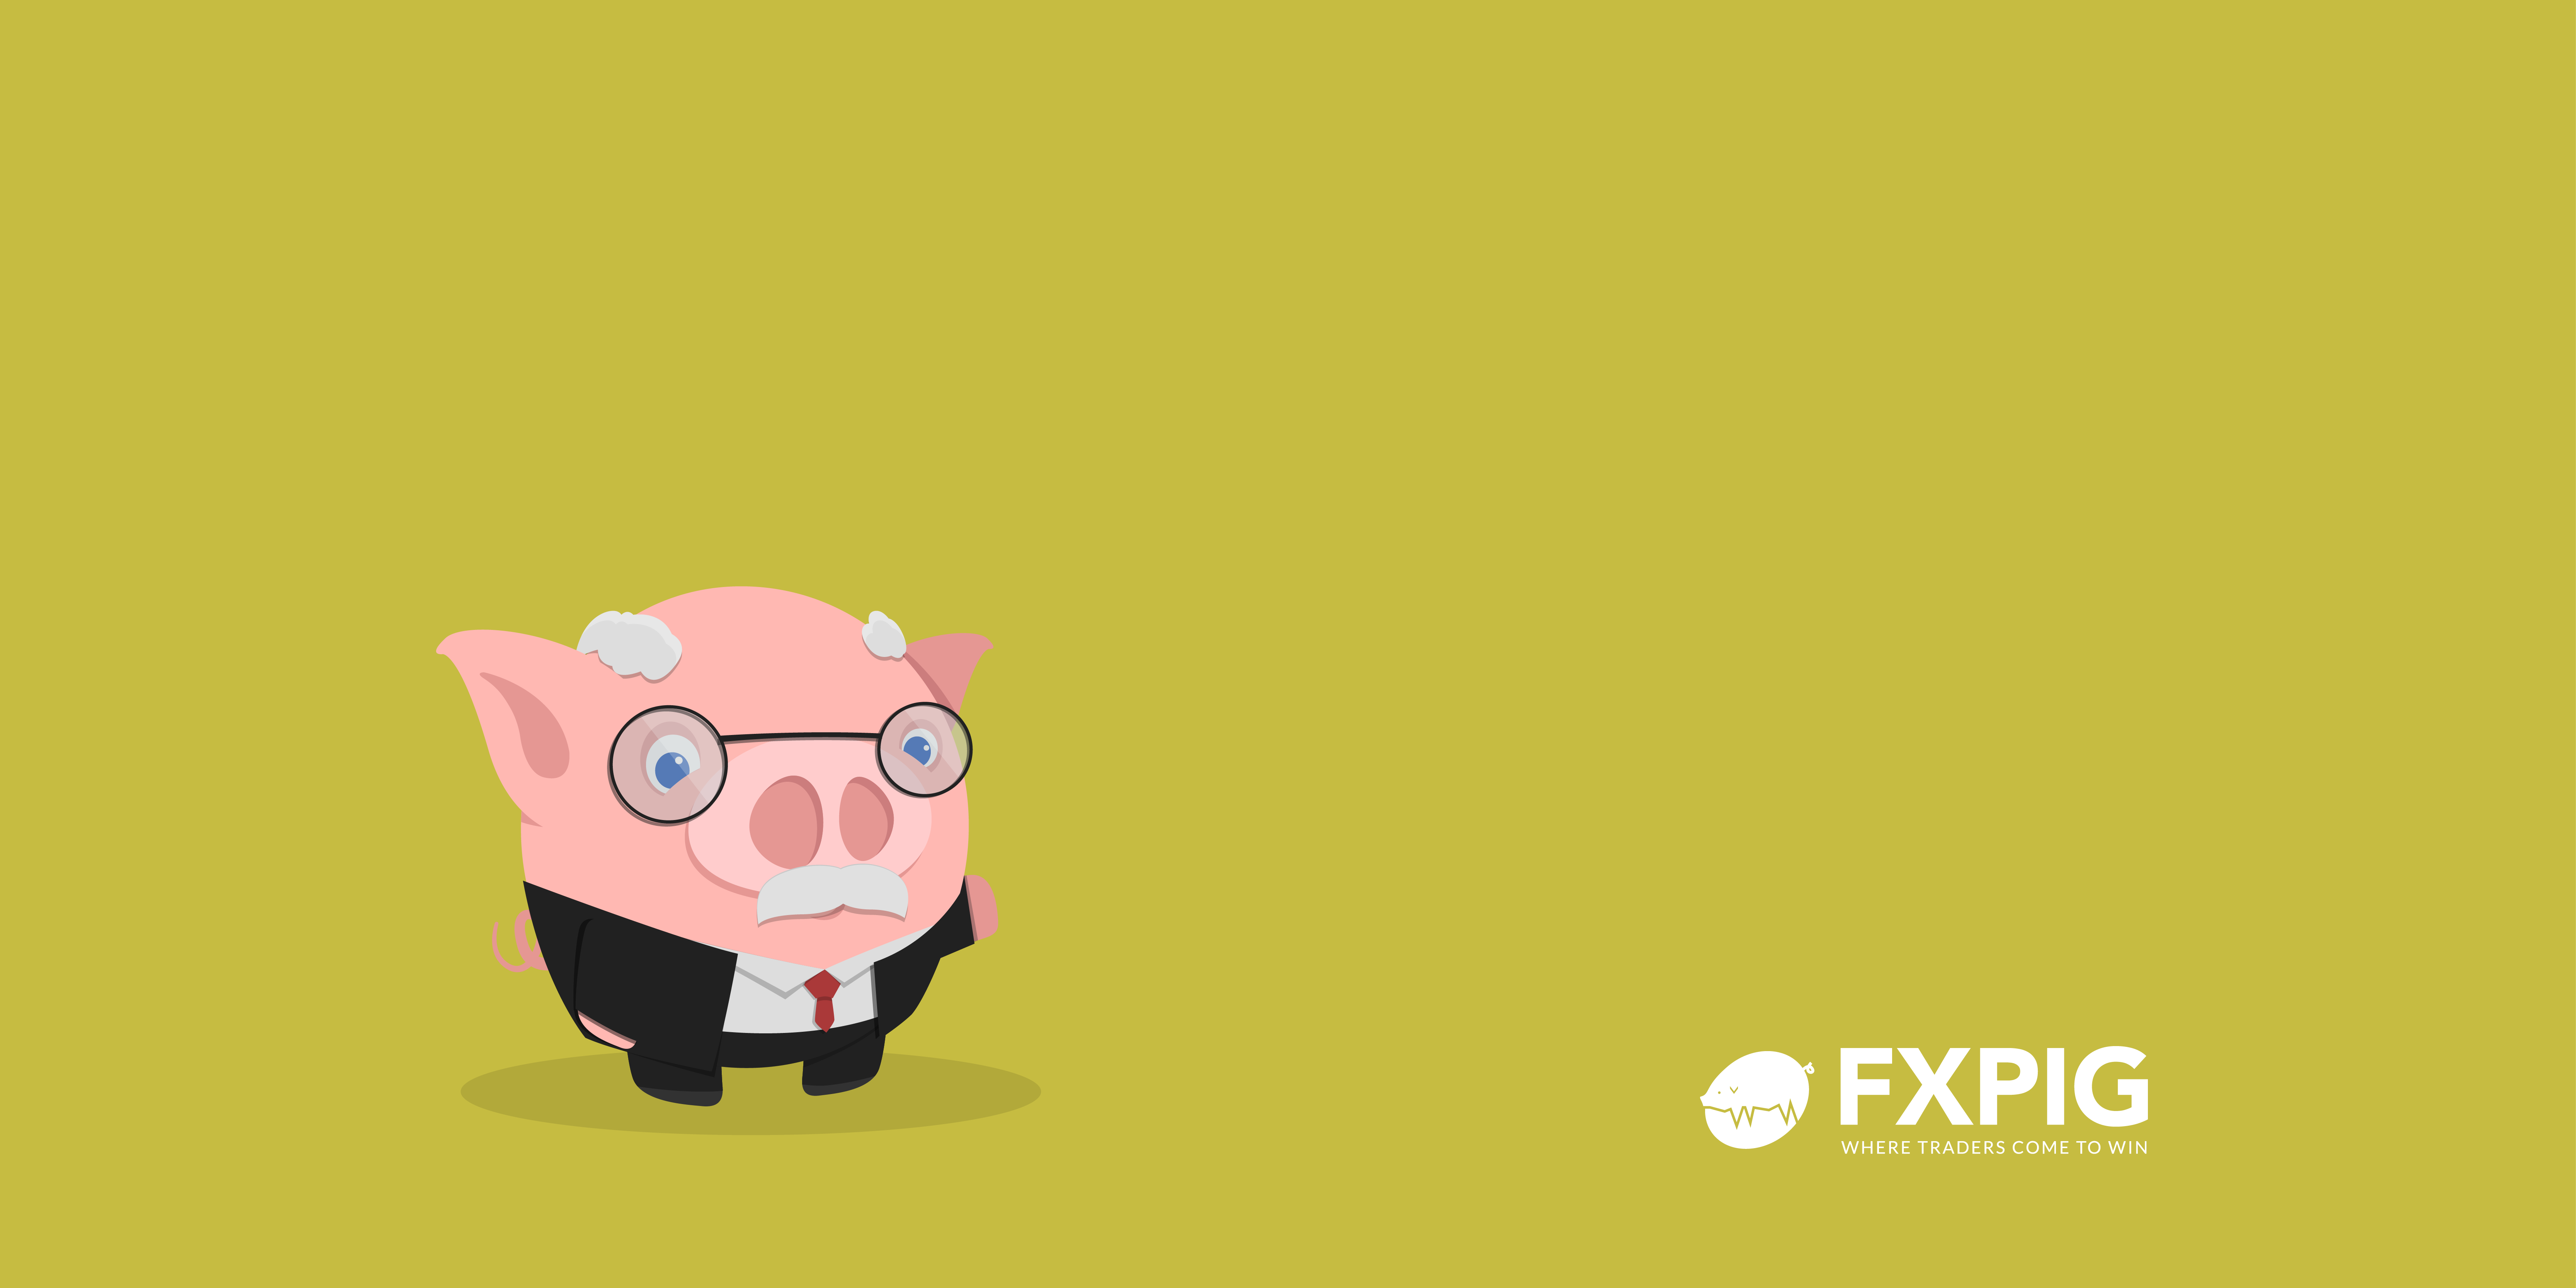 FOREX_Trading-quote-weatherman_FXPIG